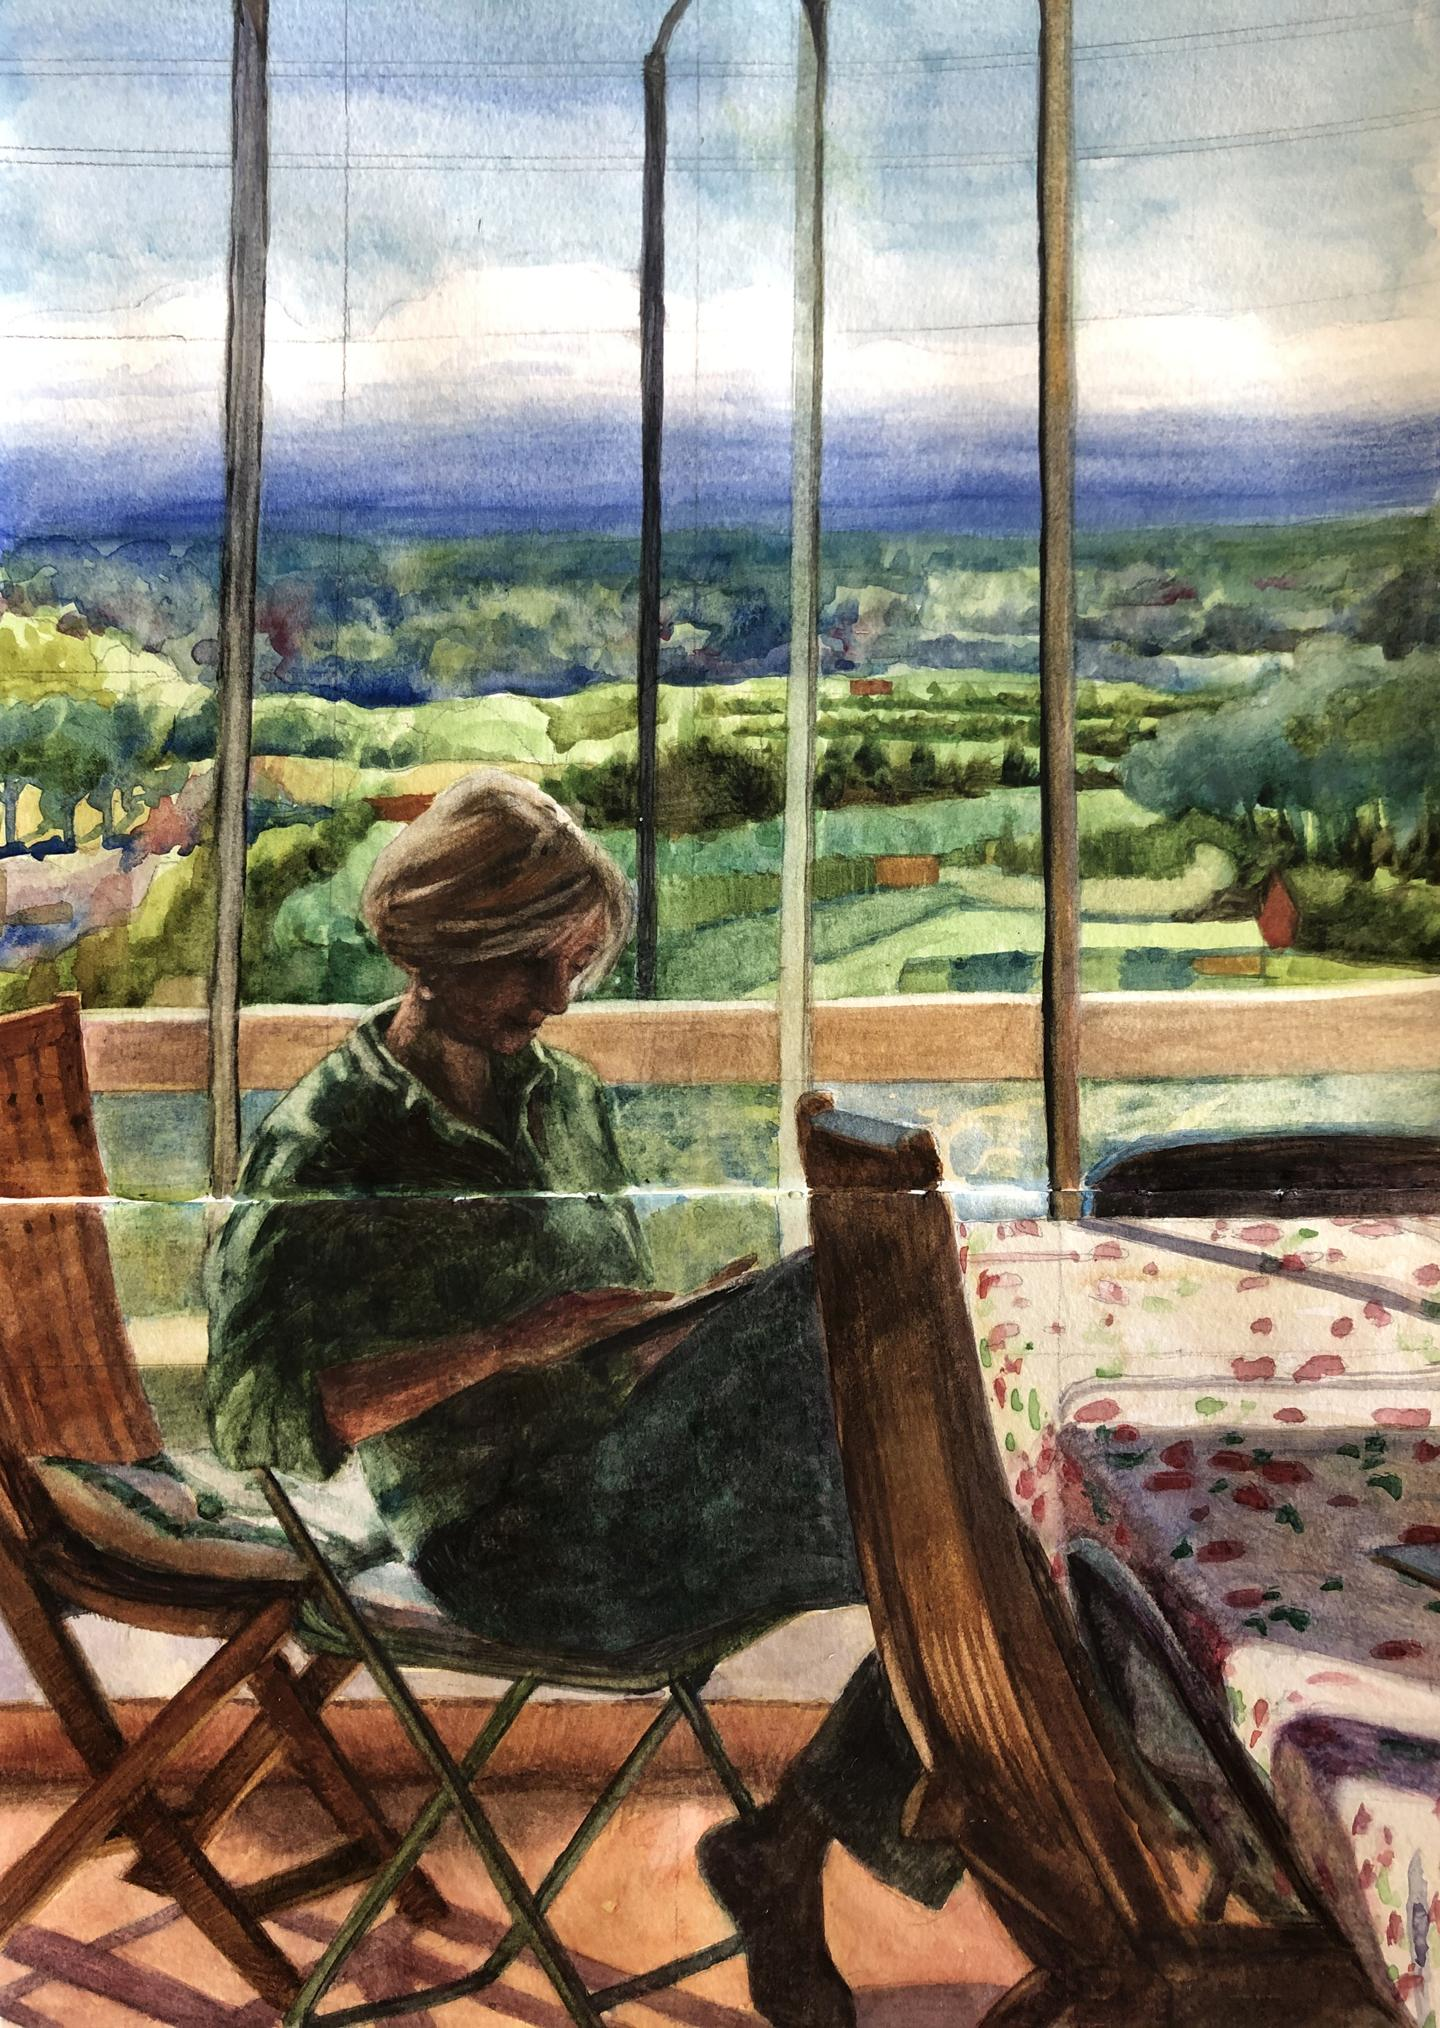 a watercolor study of a woman reading in the sun in front of a huge window looking out over a beautiful distance landscape.